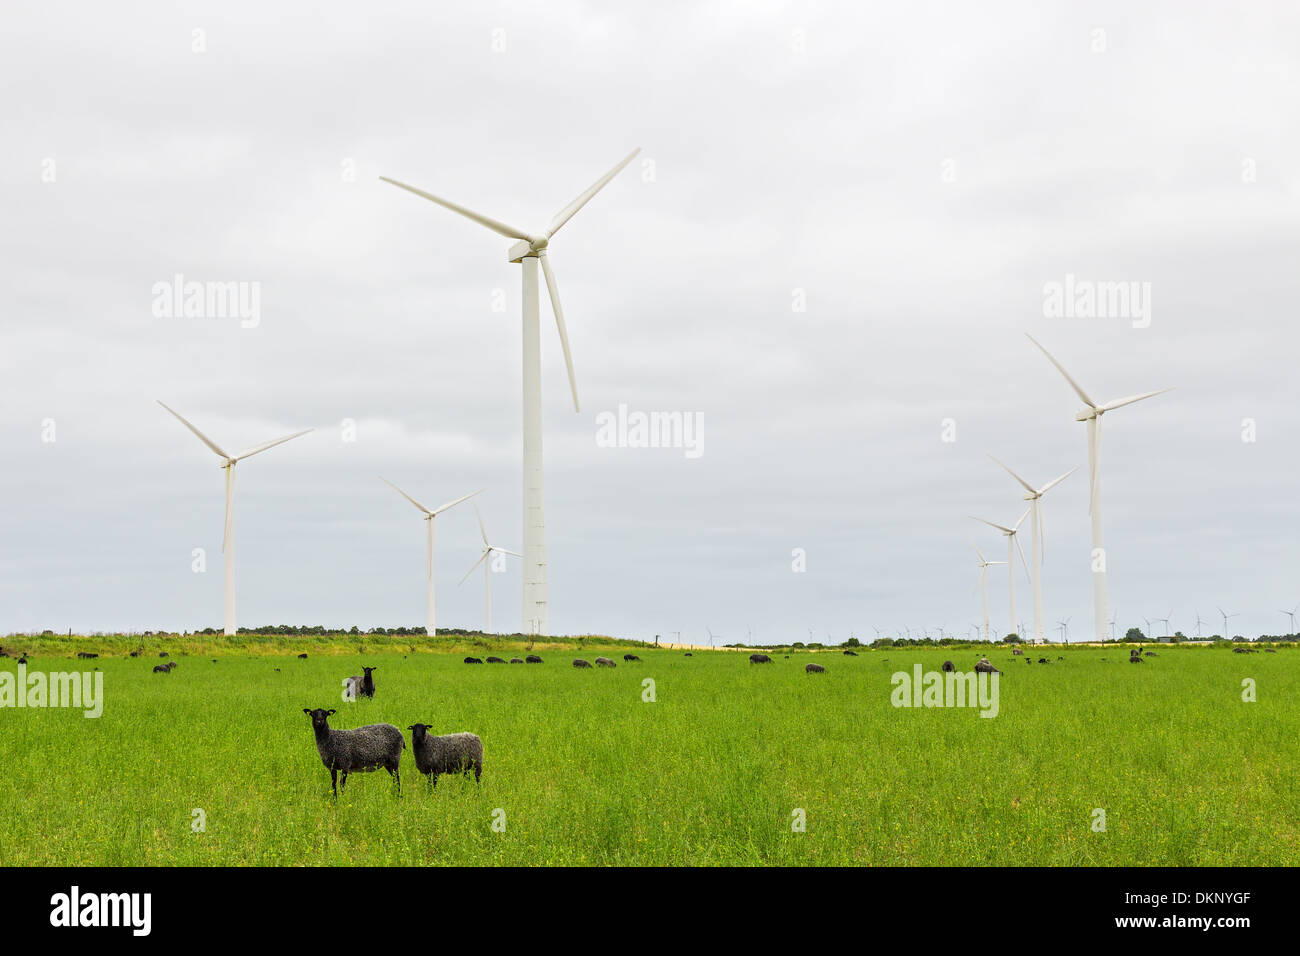 Wind turbines and sheep on green pasture. Gotland, Sweden. - Stock Image